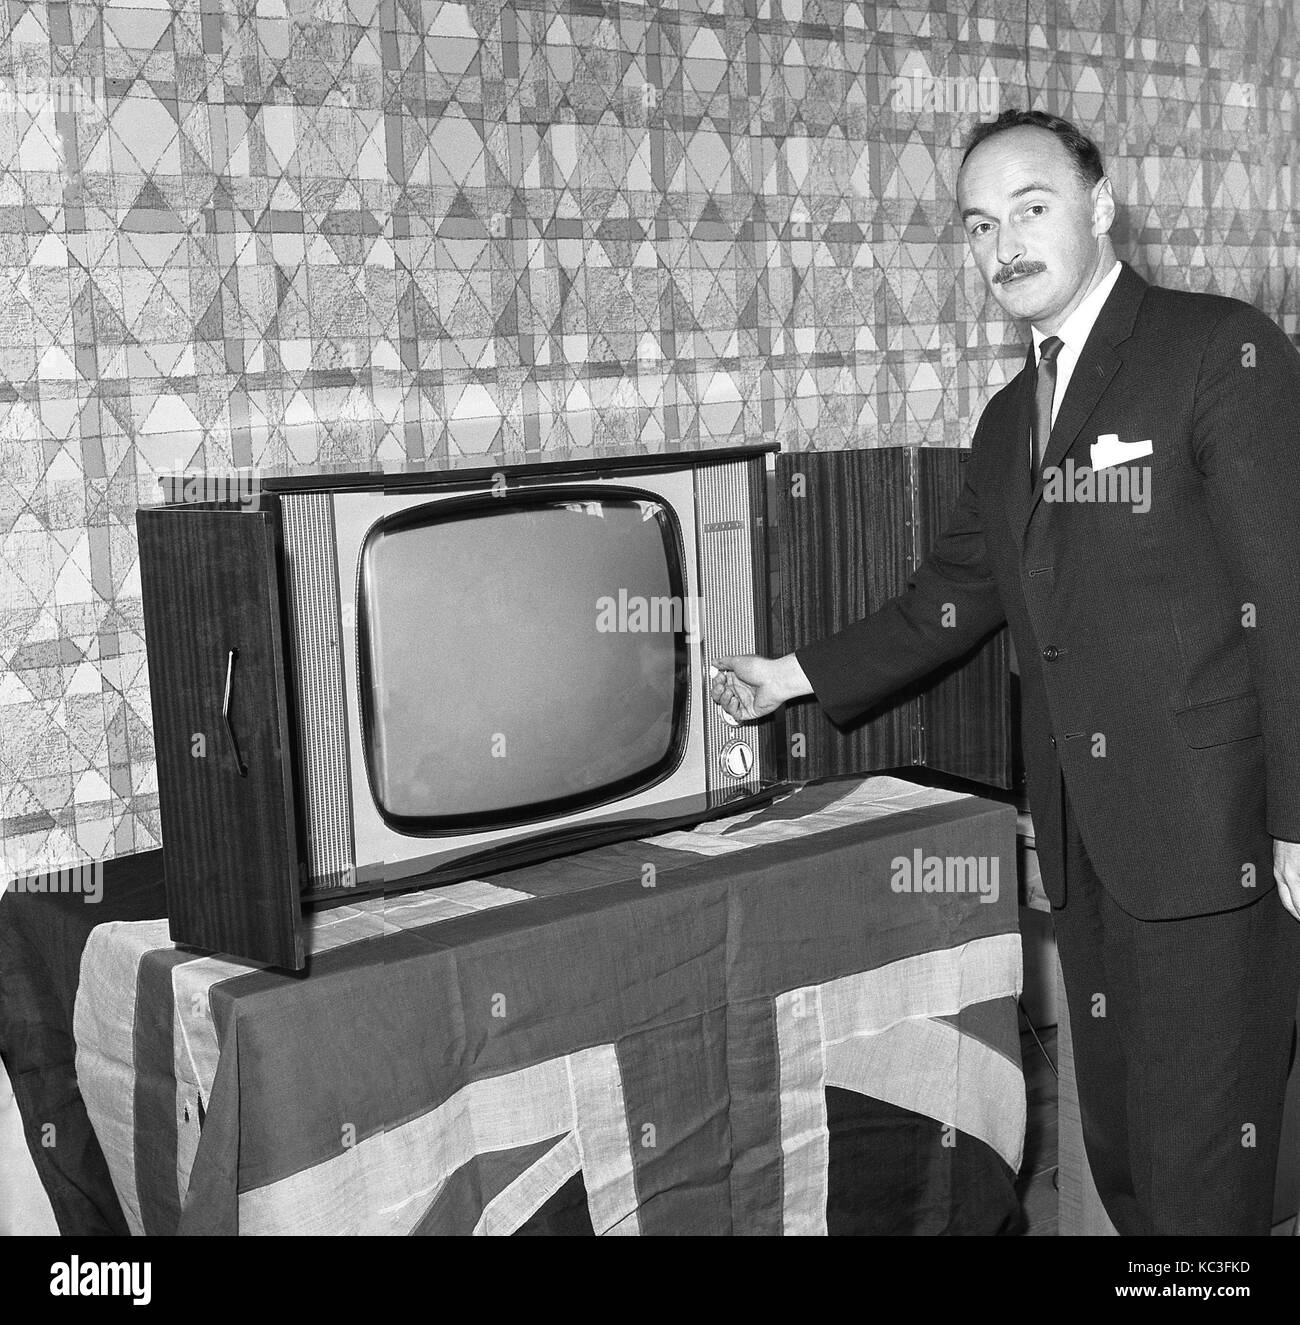 Pose Television En Bois Pro - Television Set 1960s Black And White Stock Photos Images Alamy[mjhdah]http://c.shld.net/rpx/i/s/i/spin/10038424/prod_2335539912